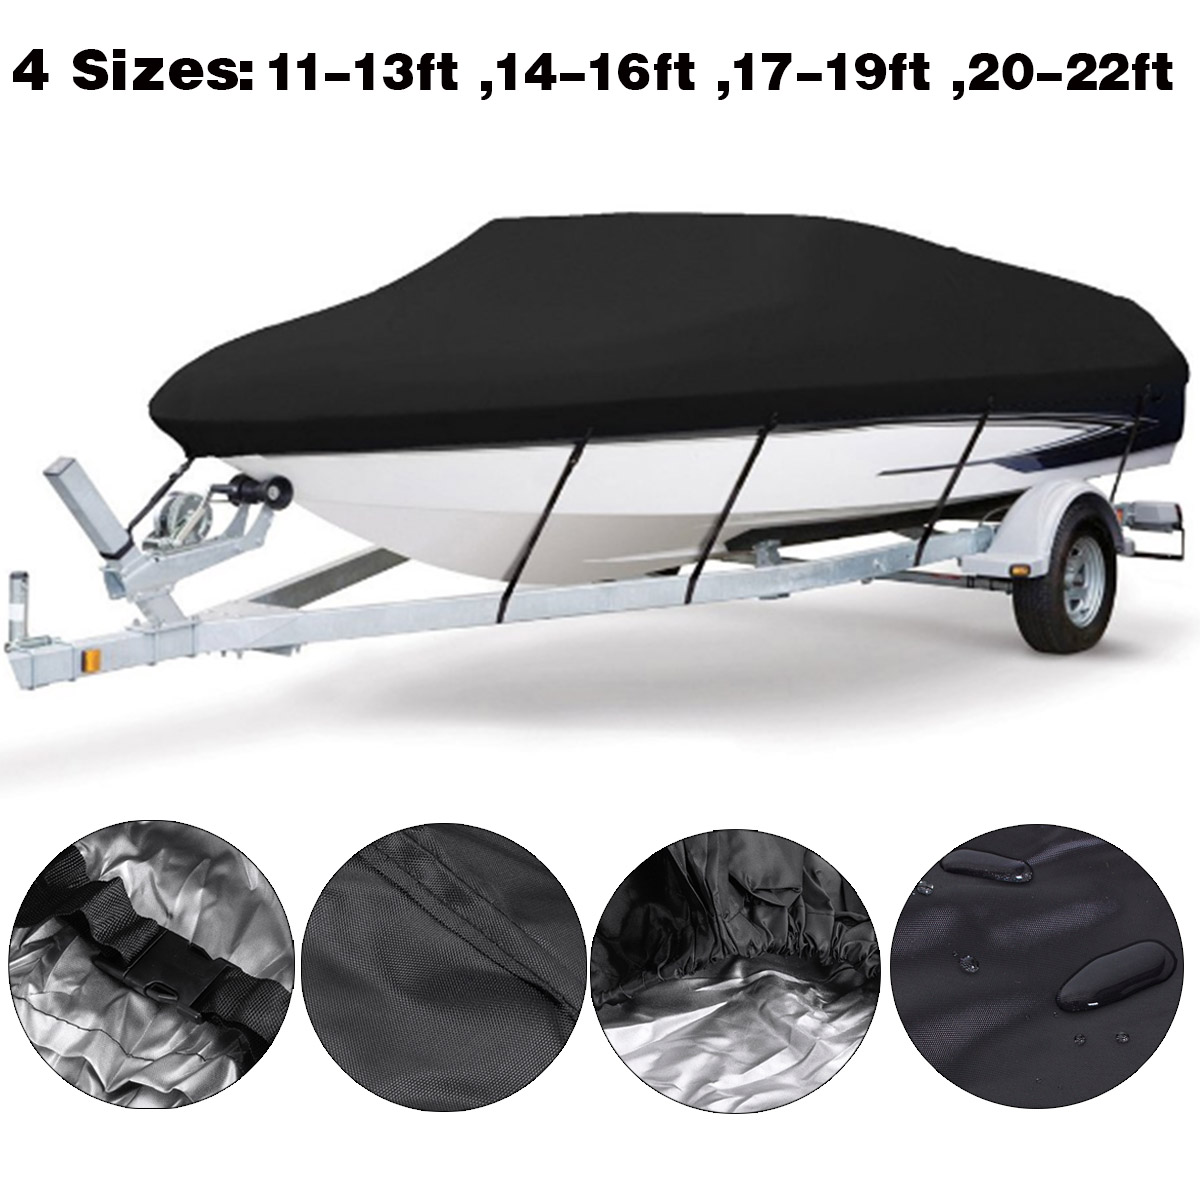 Black Marine Grade Boat Cover Sunproof Anti UV